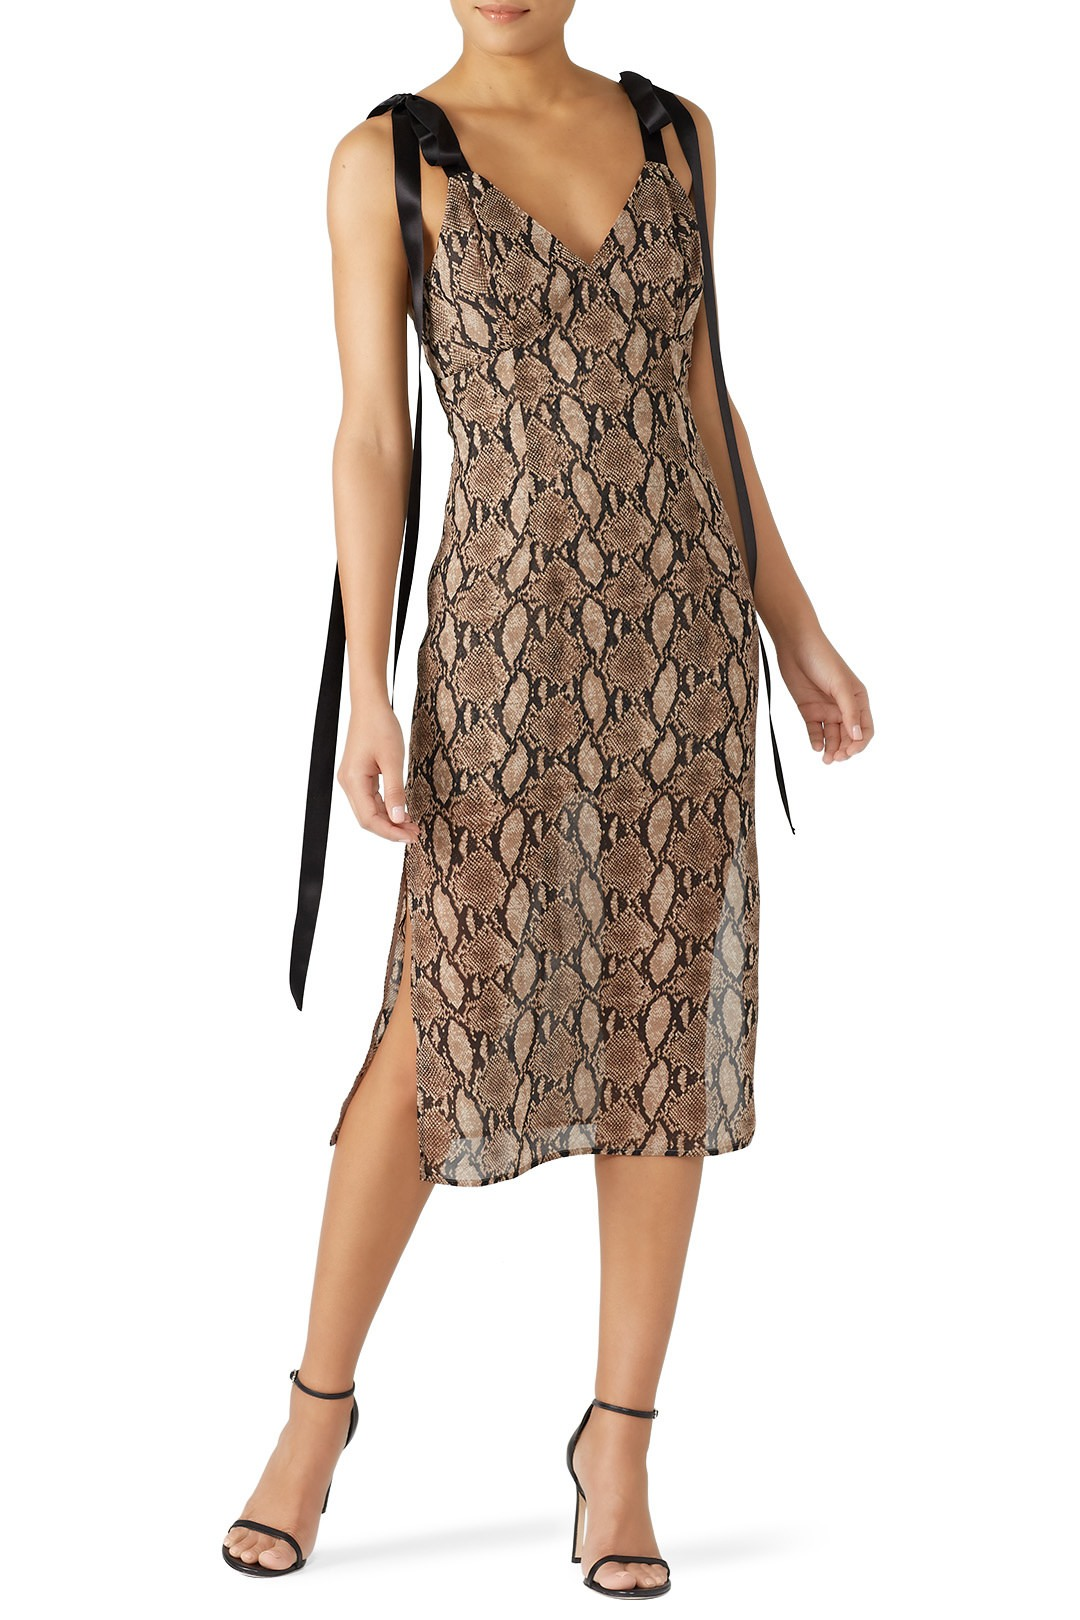 Goen. J Vegas Python Printed Dress - Dis is kewl and it's def a dress to wear if you're looking to leave with someone, if ya know what I mean…wink wink lol.